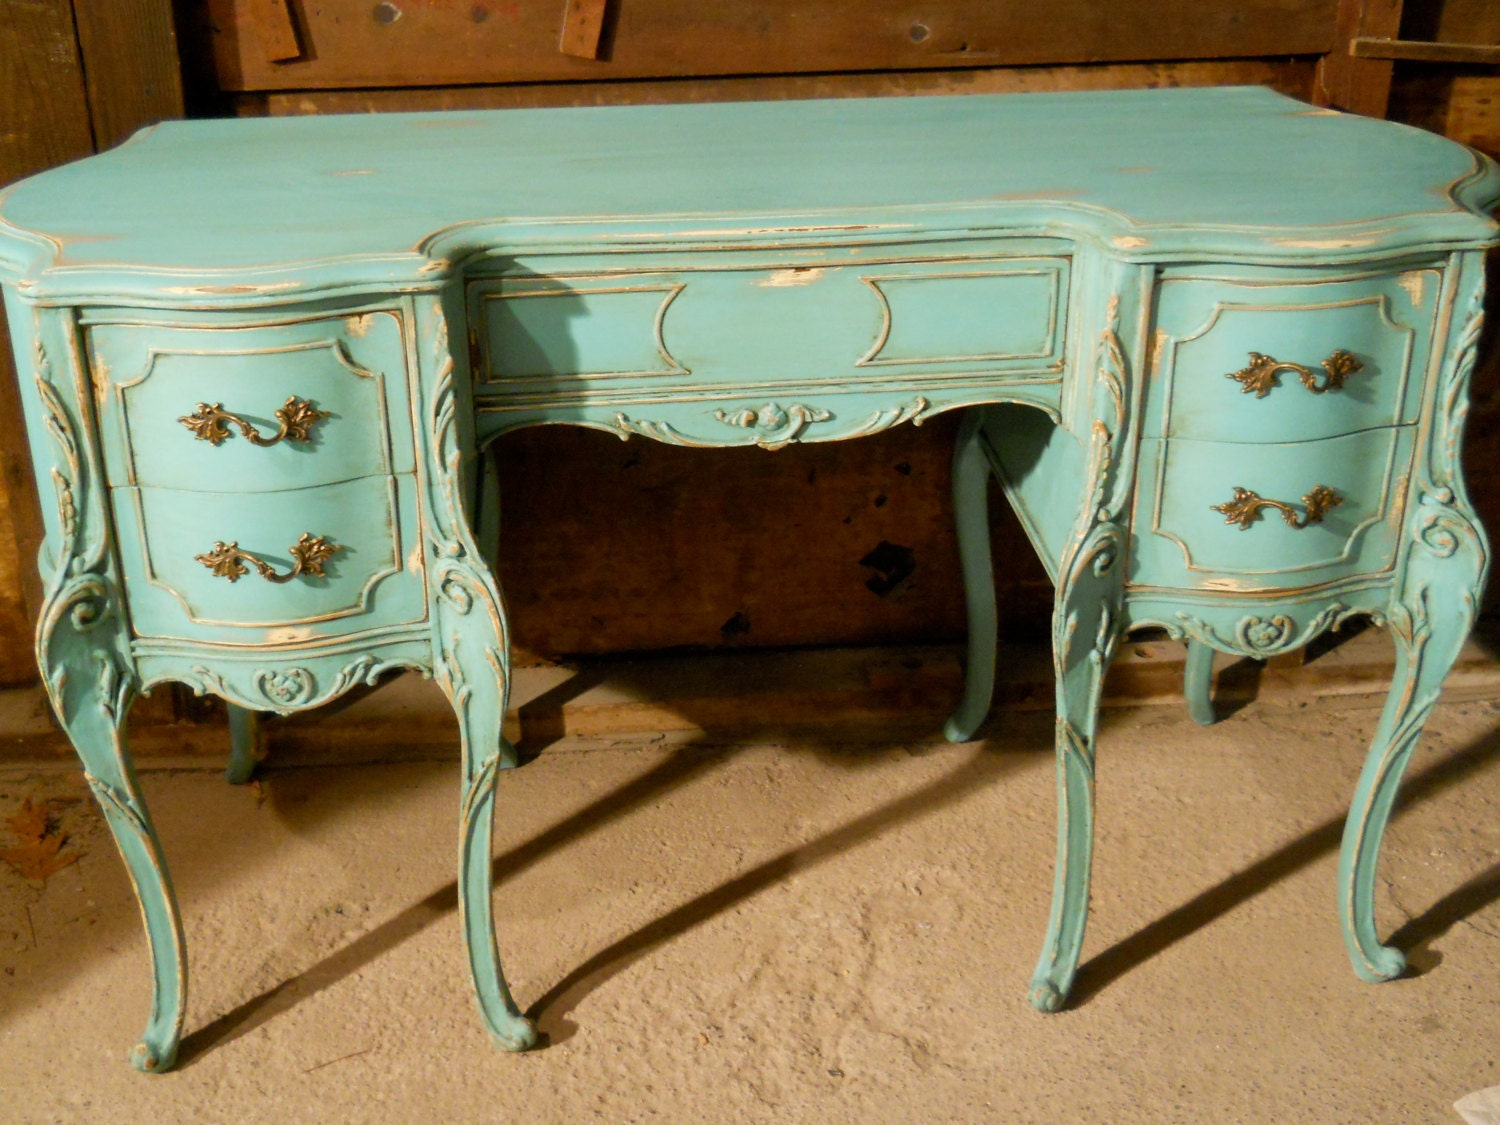 Vintage French Provincial Hand Painted Aqua By SavannahHopeVintage